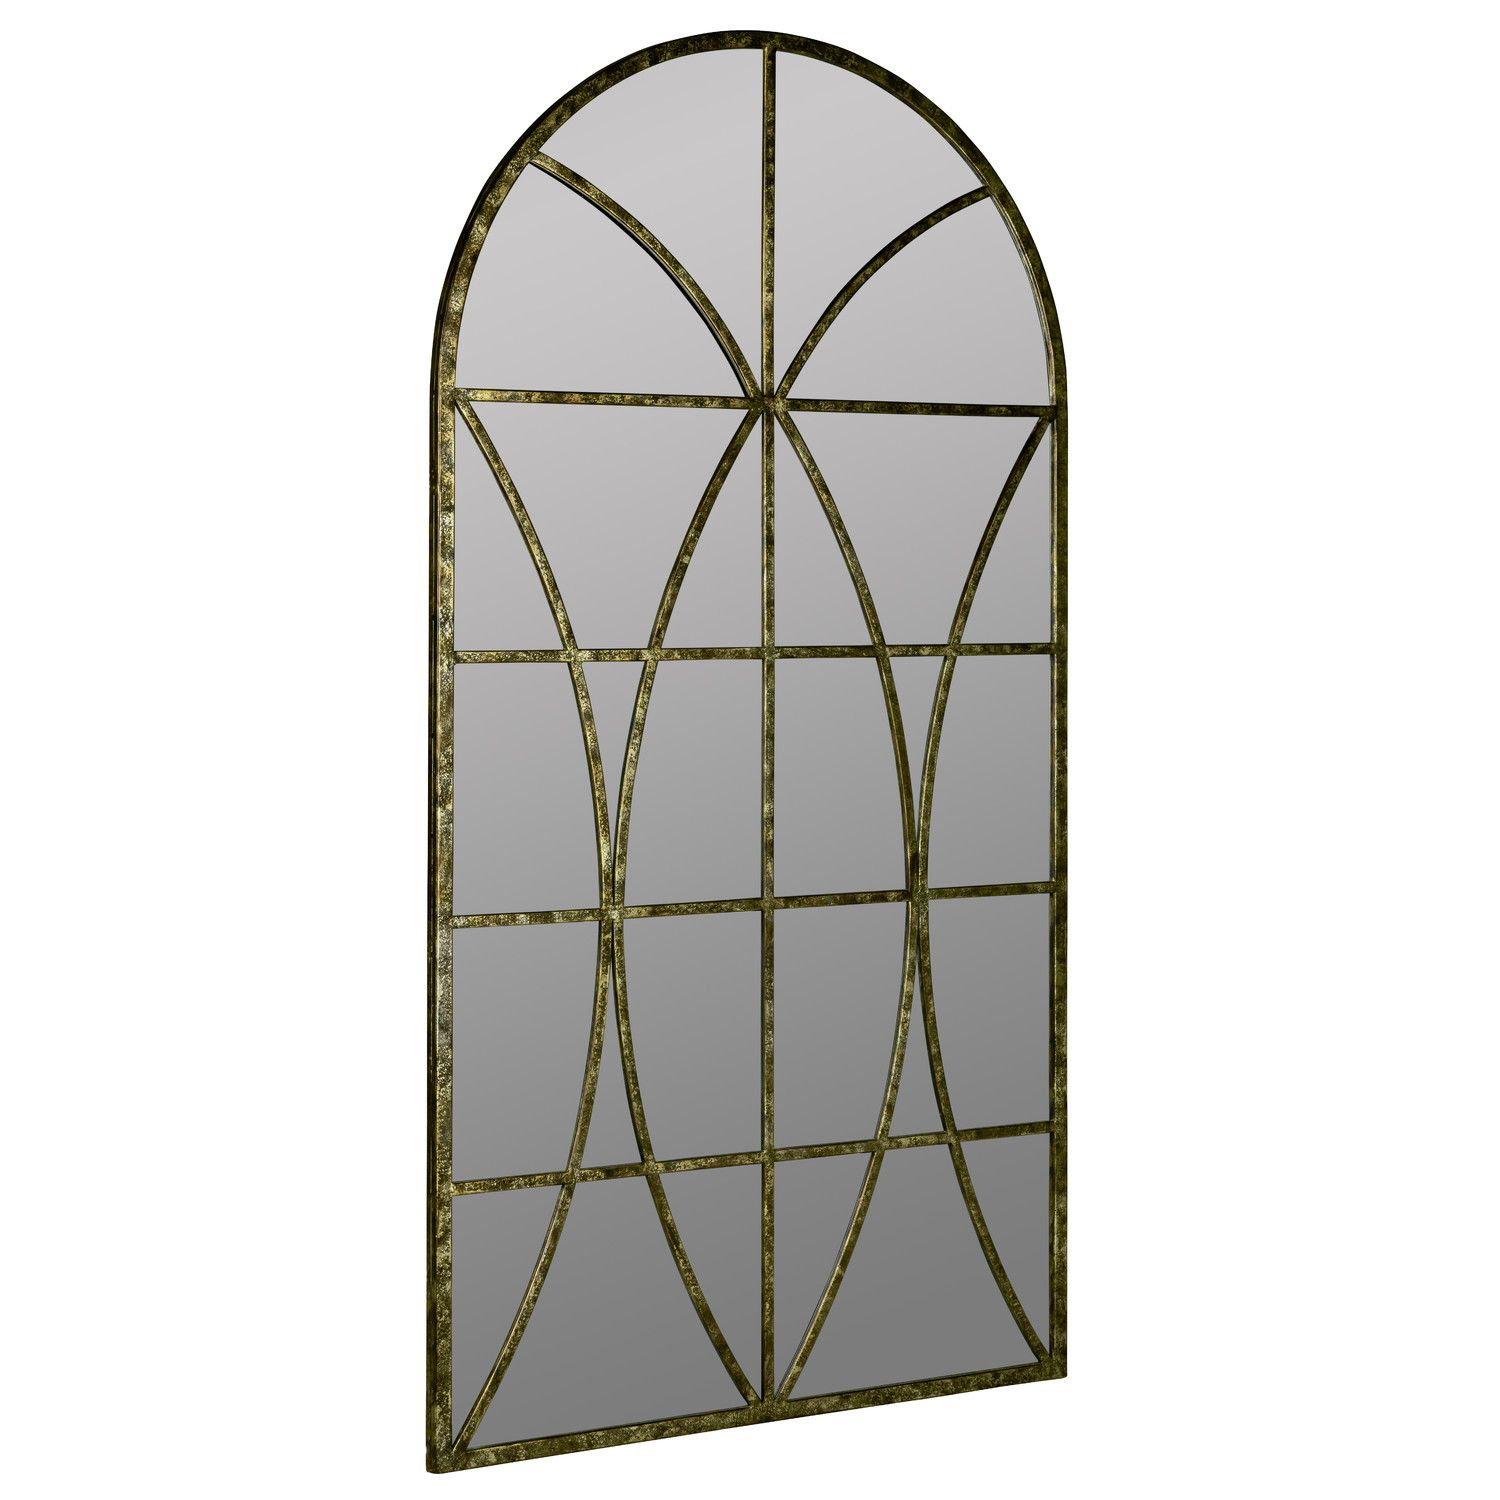 Phineas Wall Mirror | Outdoor Living | Decor, Wood Framed Regarding Phineas Wall Mirrors (Image 13 of 20)